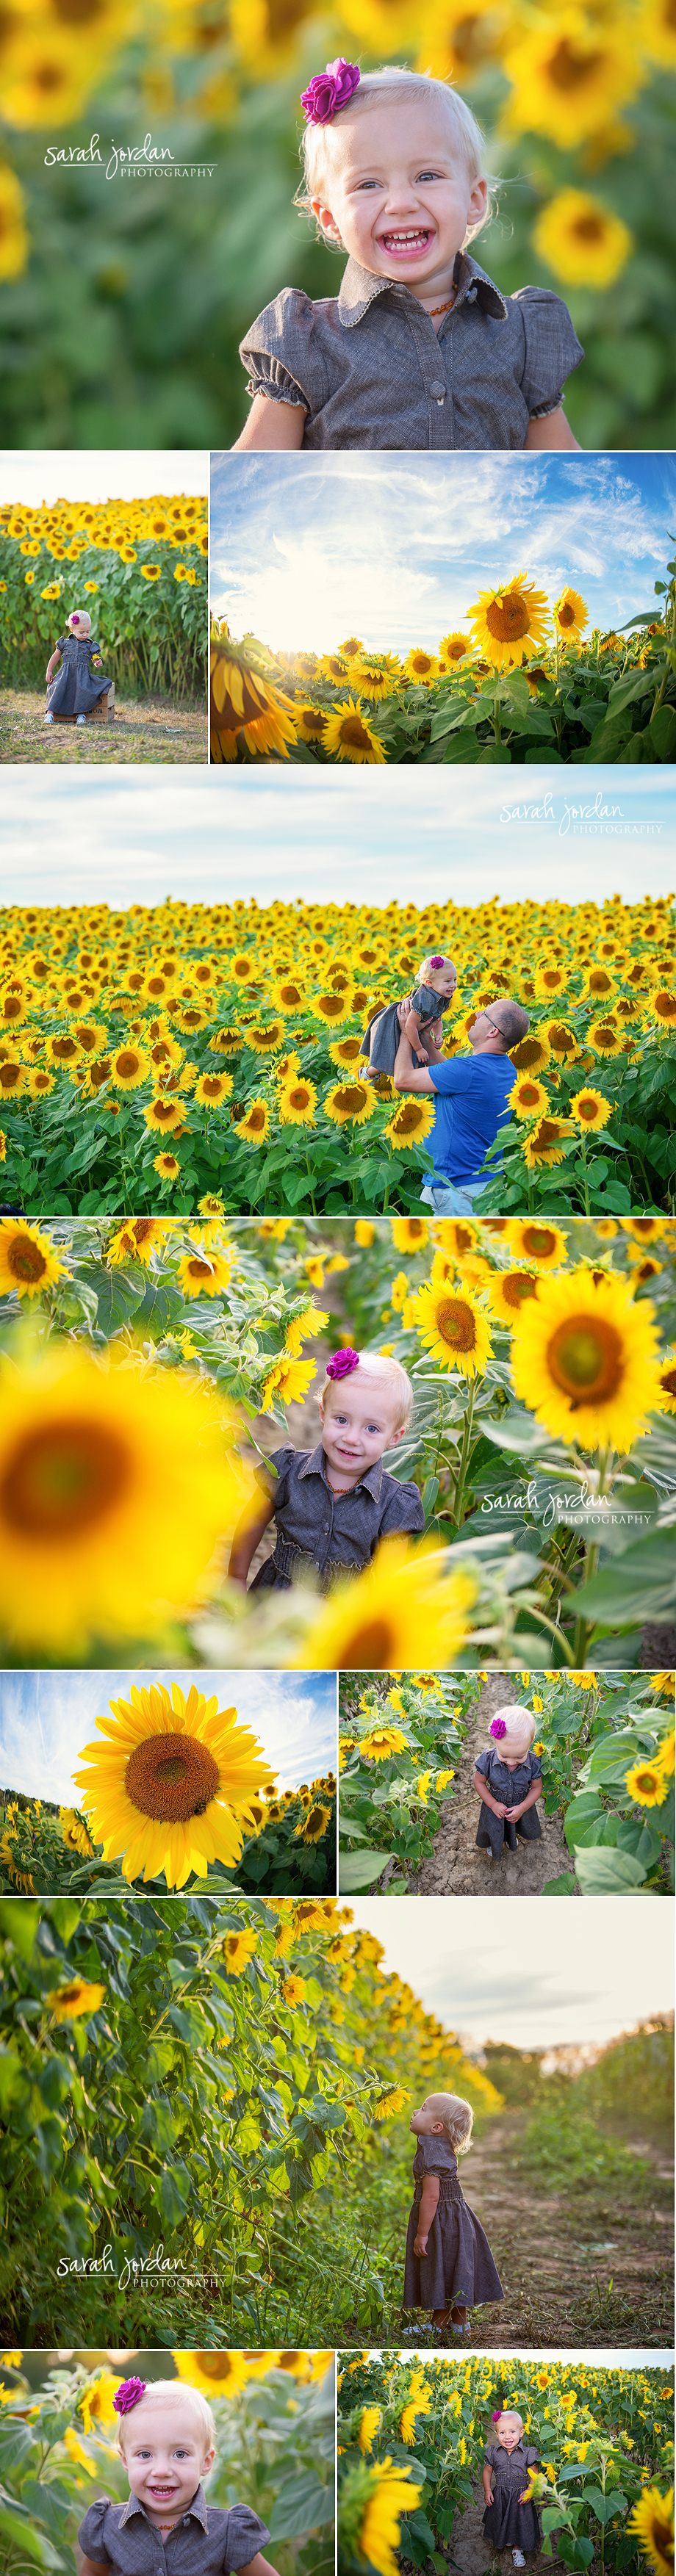 Sunflower photo session